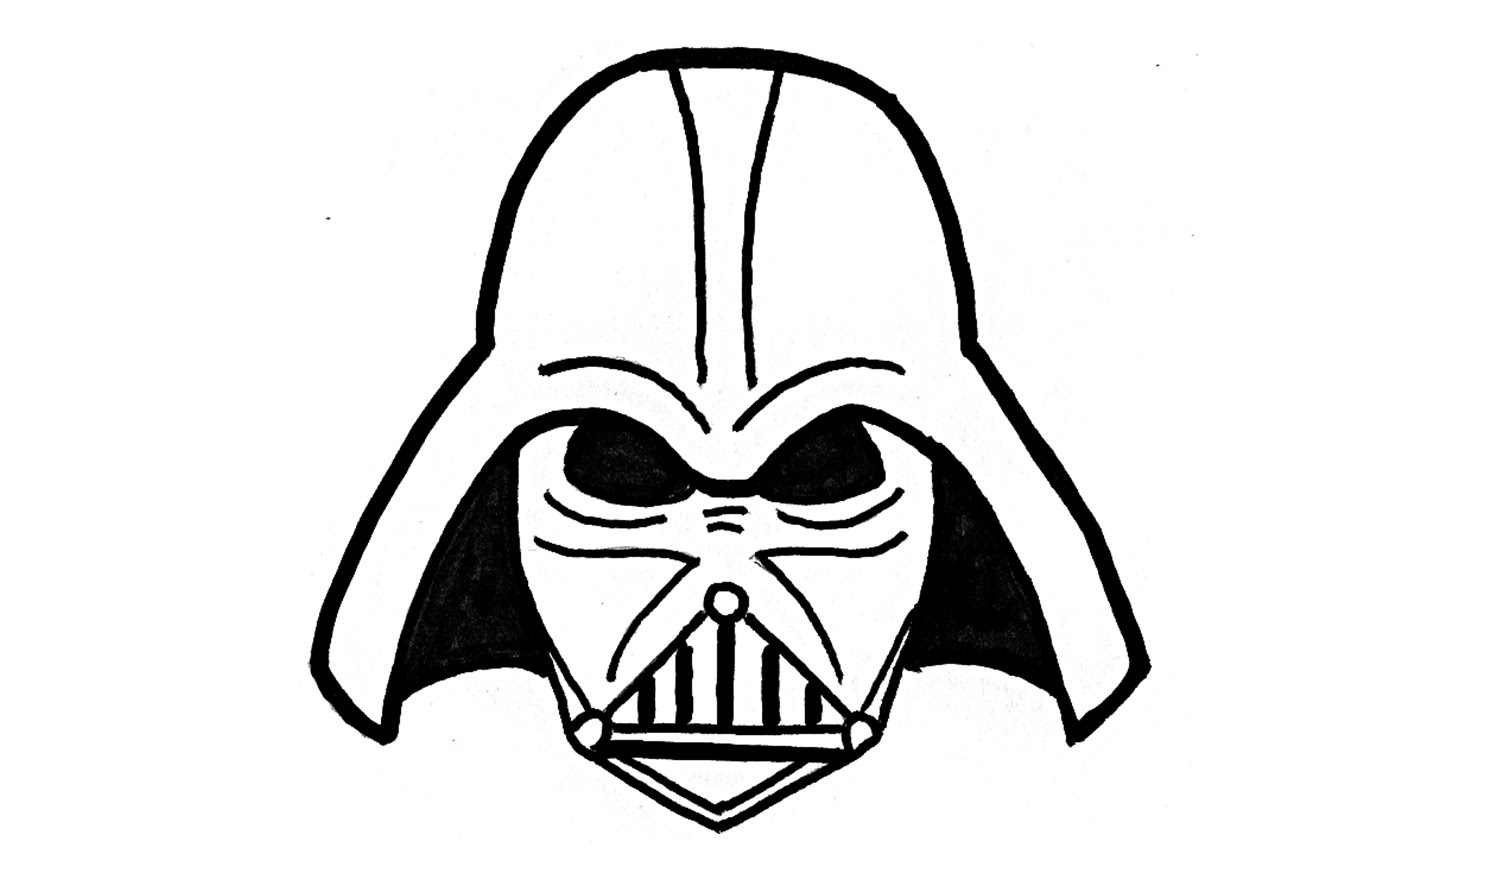 1500x885 Como Desenhar O Darth Vader De Star Wars (Personagem)